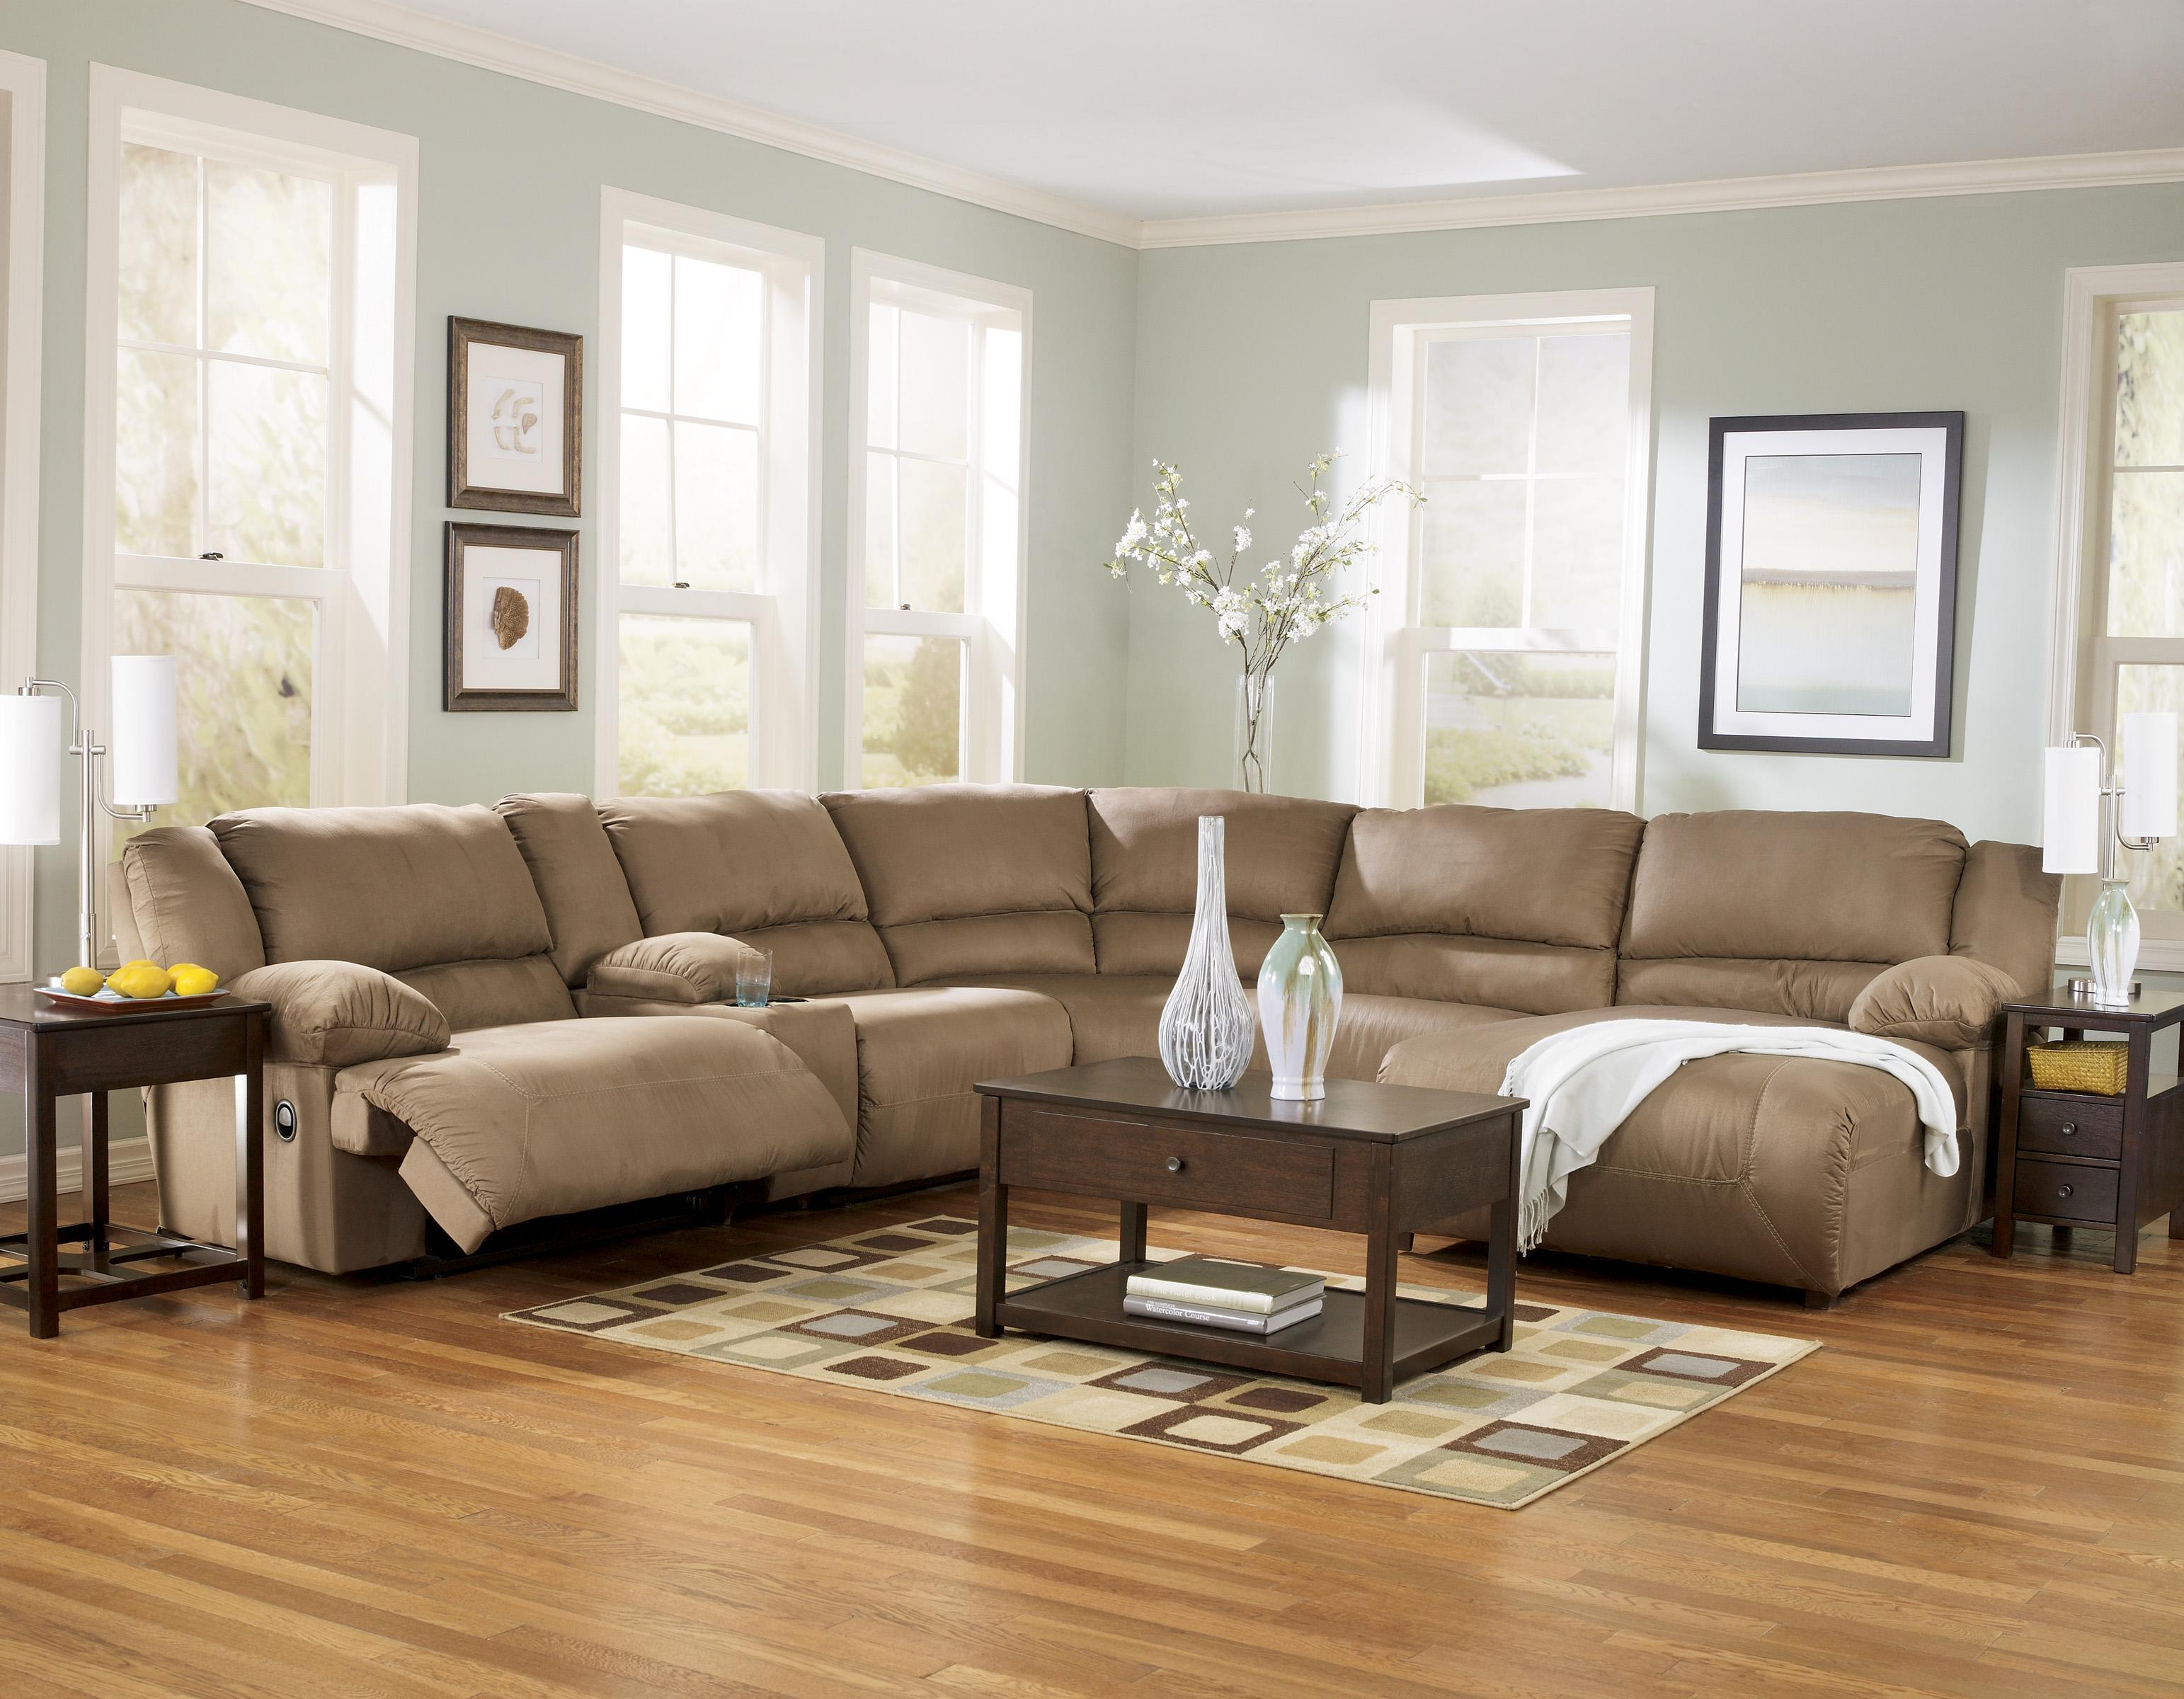 6 Piece Sectional Sofa Group